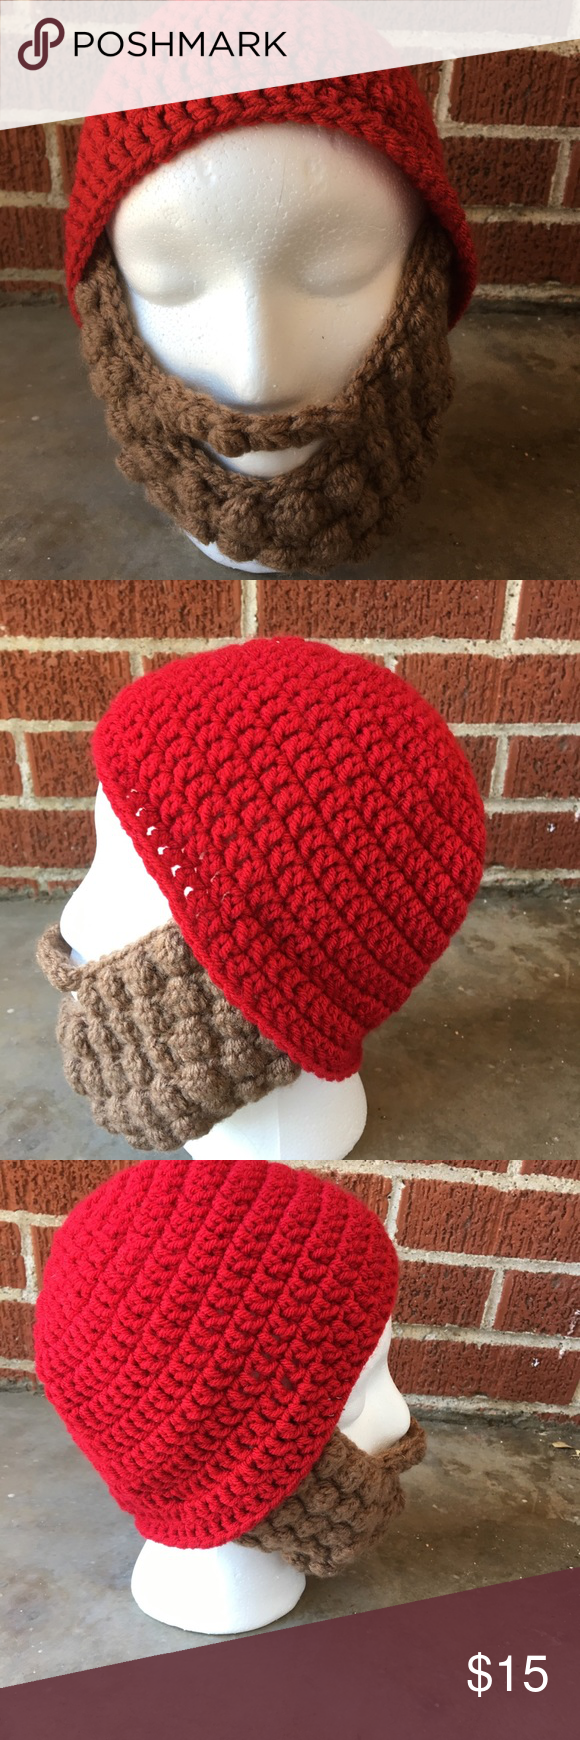 Red crochet beard hat A handmade red beard hat. Perfect for cold weather Accessories Hats #crochetedbeards Red crochet beard hat A handmade red beard hat. Perfect for cold weather Accessories Hats #crochetedbeards